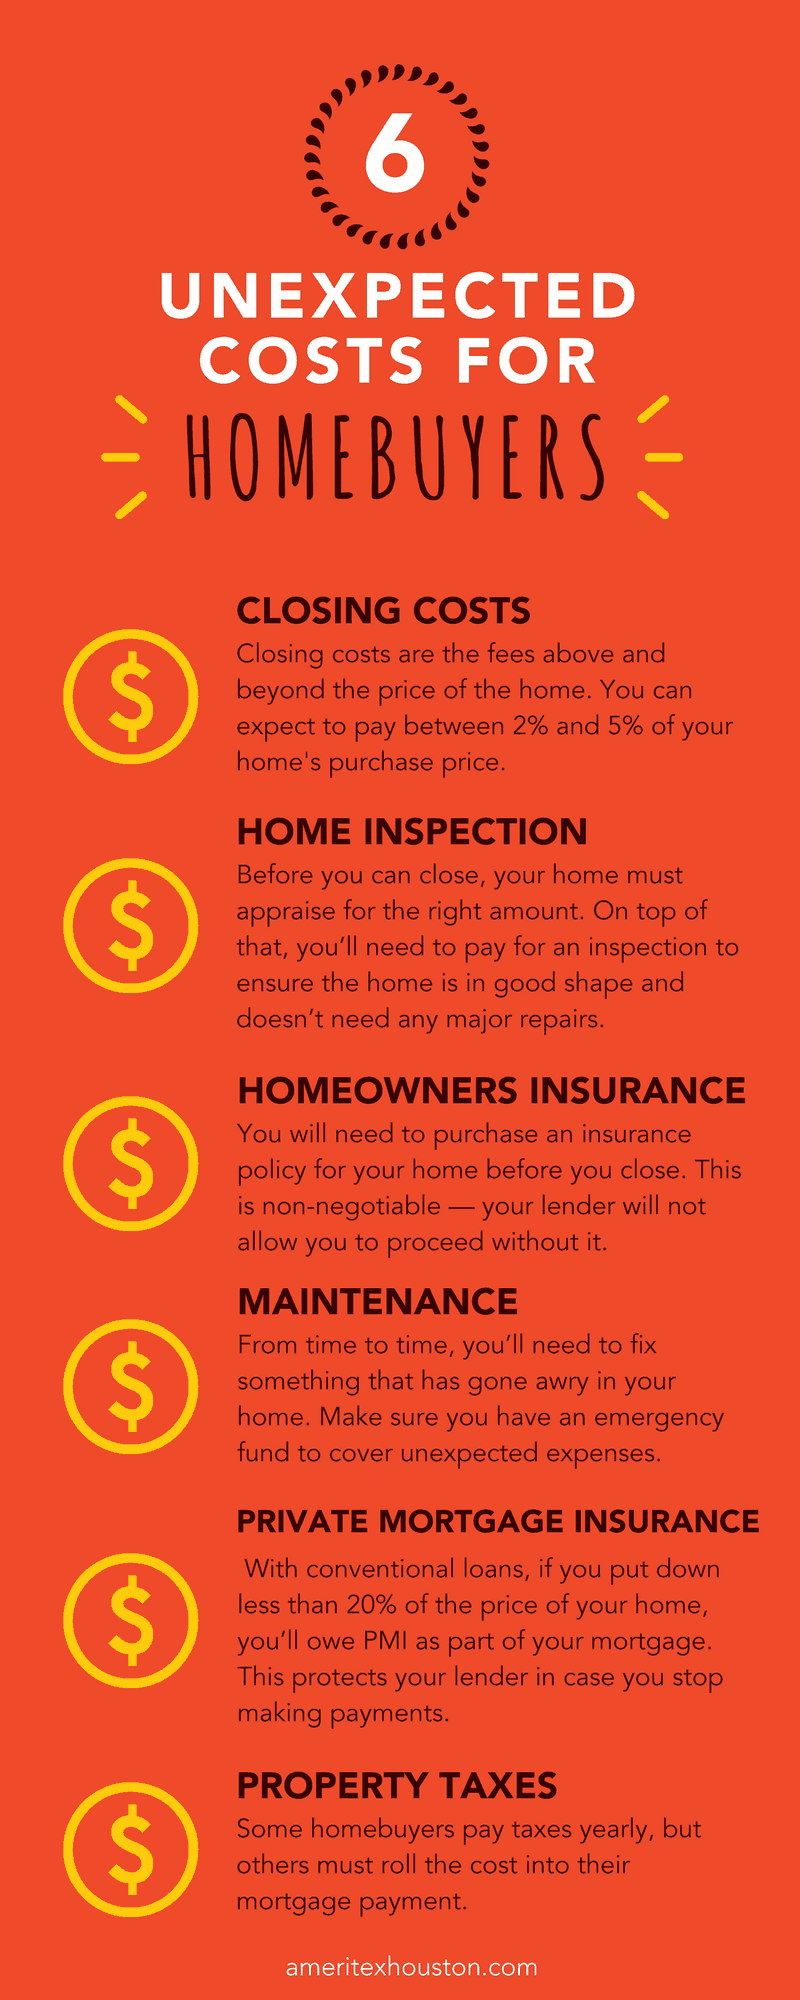 visual-unexpected-costs-for-homebuyers-1